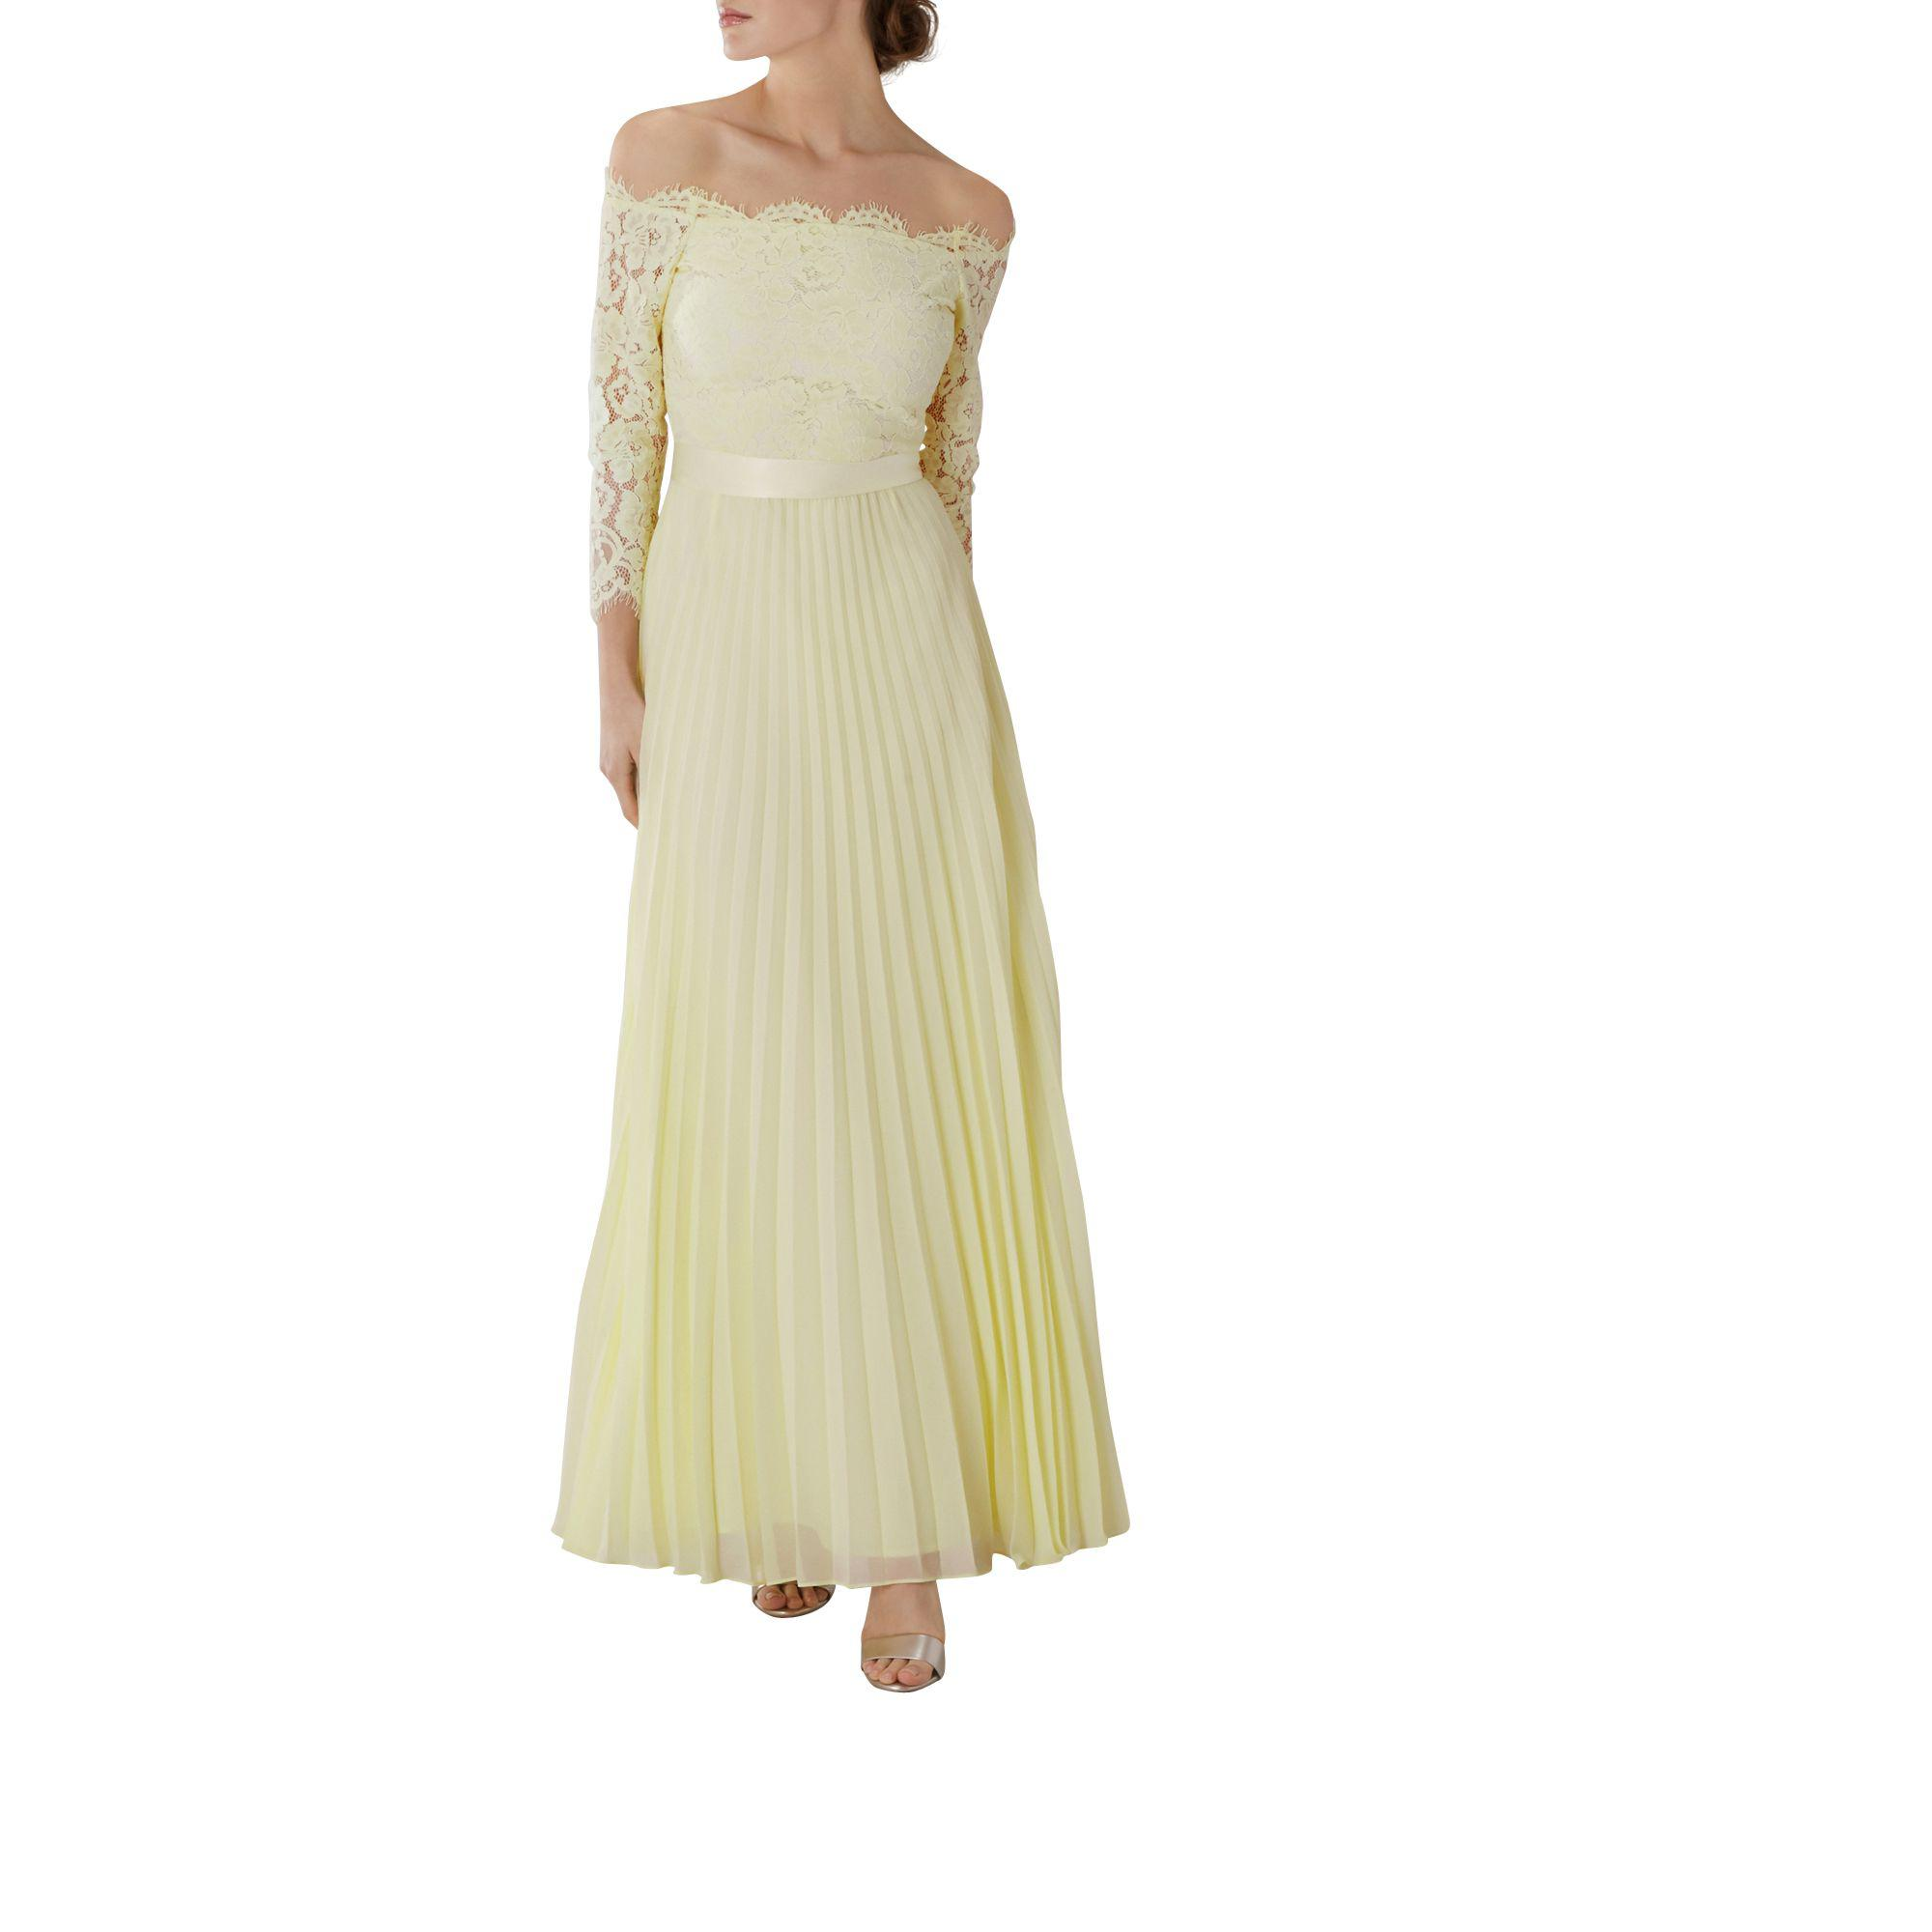 b492a685db69 Coast Lemon Lace 'imi' Bardot Long Sleeve Maxi Bridesmaid Dress in ...